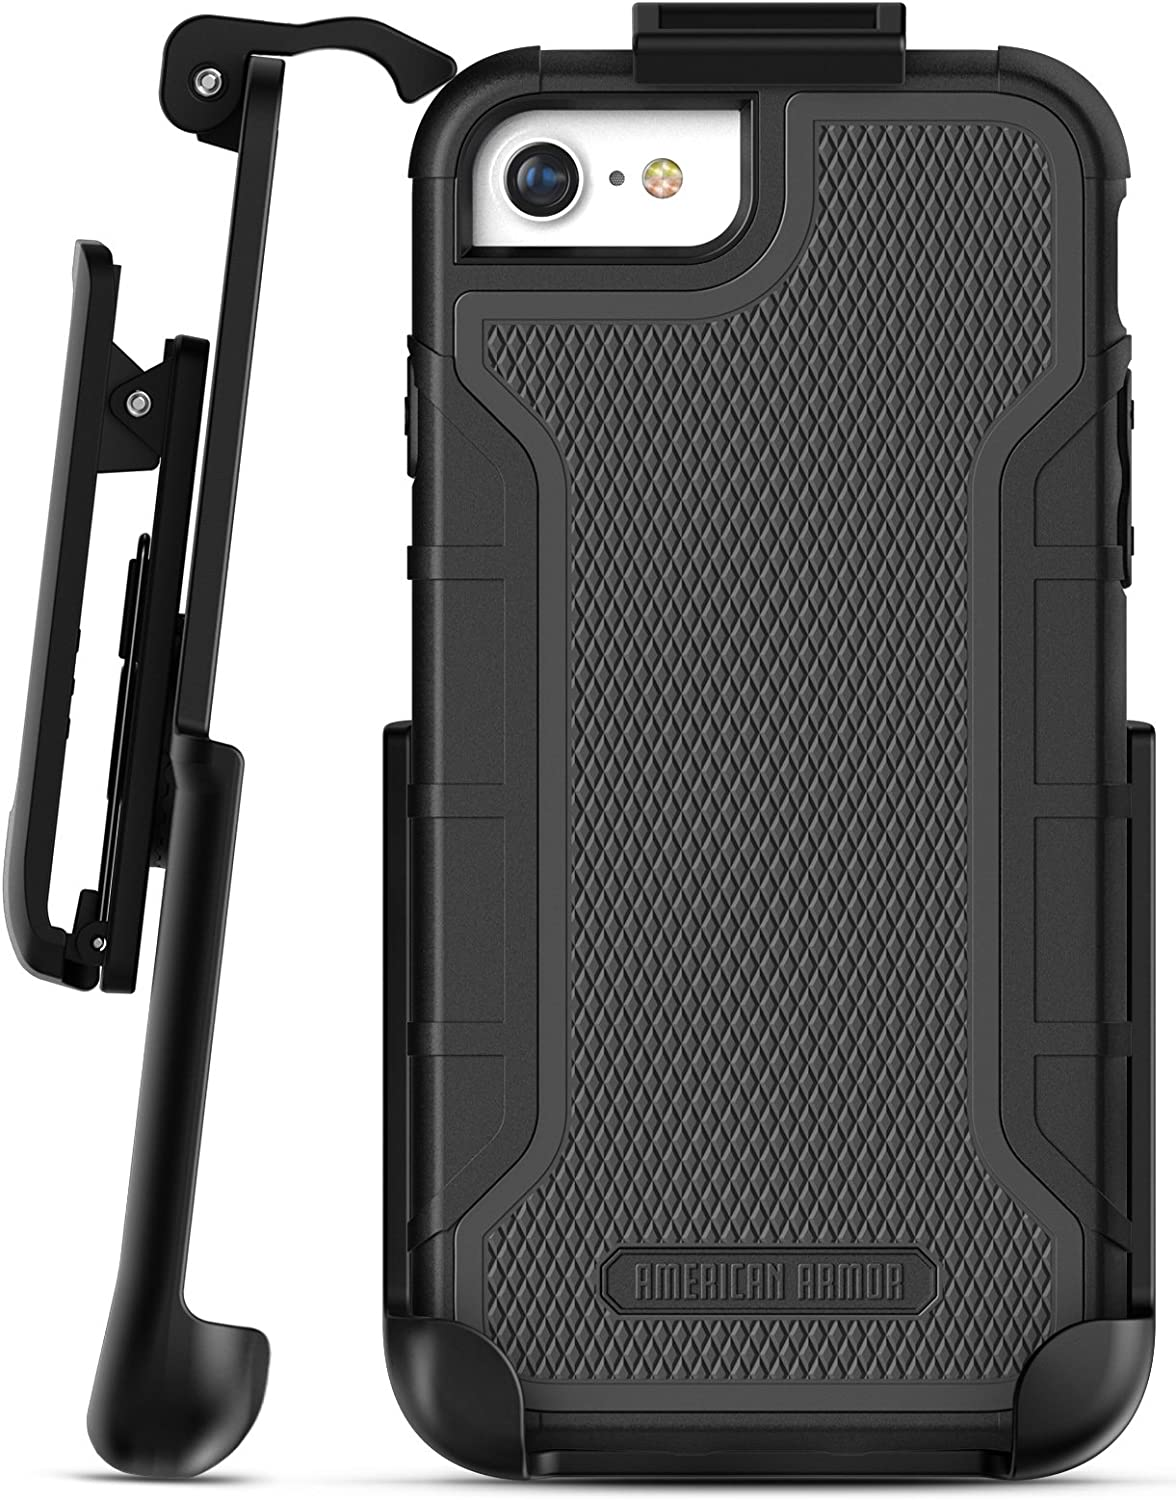 Encased Heavy Duty iPhone 8 Belt Case (Built in Screen Protector) Shockproof American Armor, Full-body Rugged Cover w/ Holster Clip - Compatible to Apple iPhone 8 4.7inch (Black)